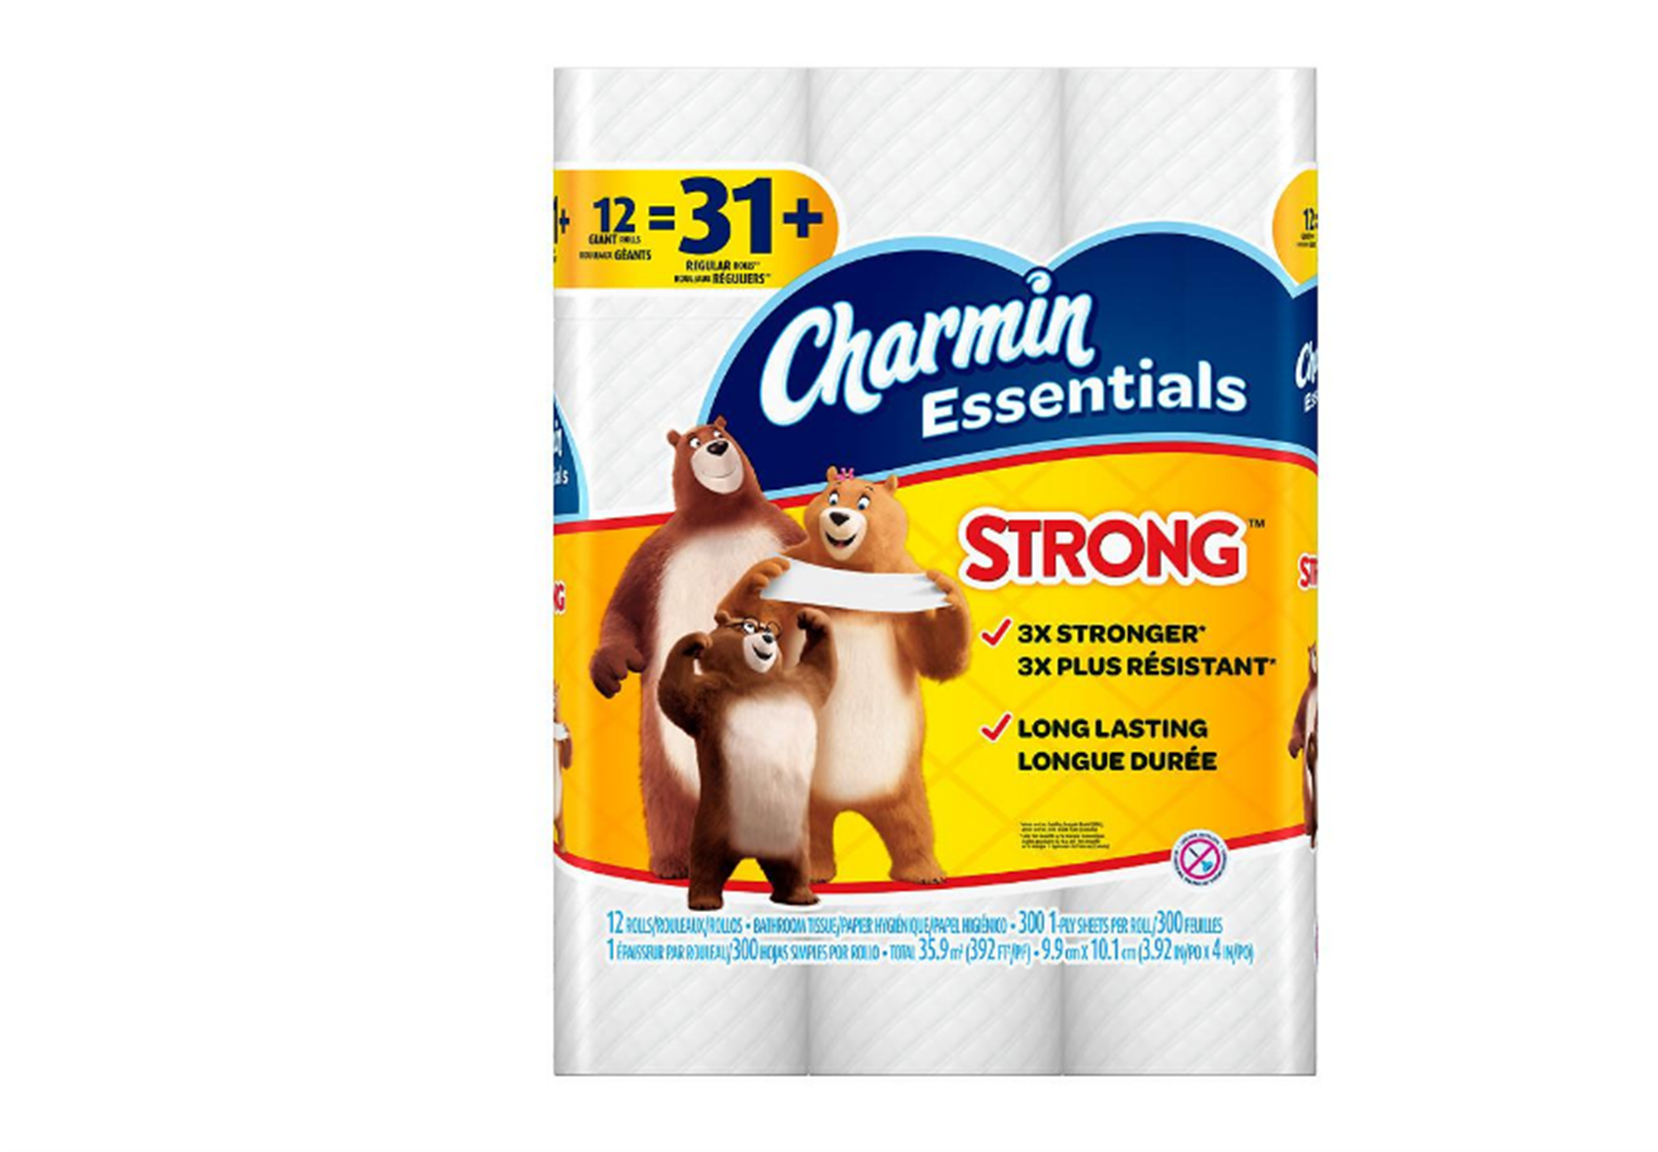 Walgreens.com – Charmin Essentials Strong 12 Giant Rolls Toilet Paper (31 Reg Rolls) Only 3.99 + Free Store Pickup!